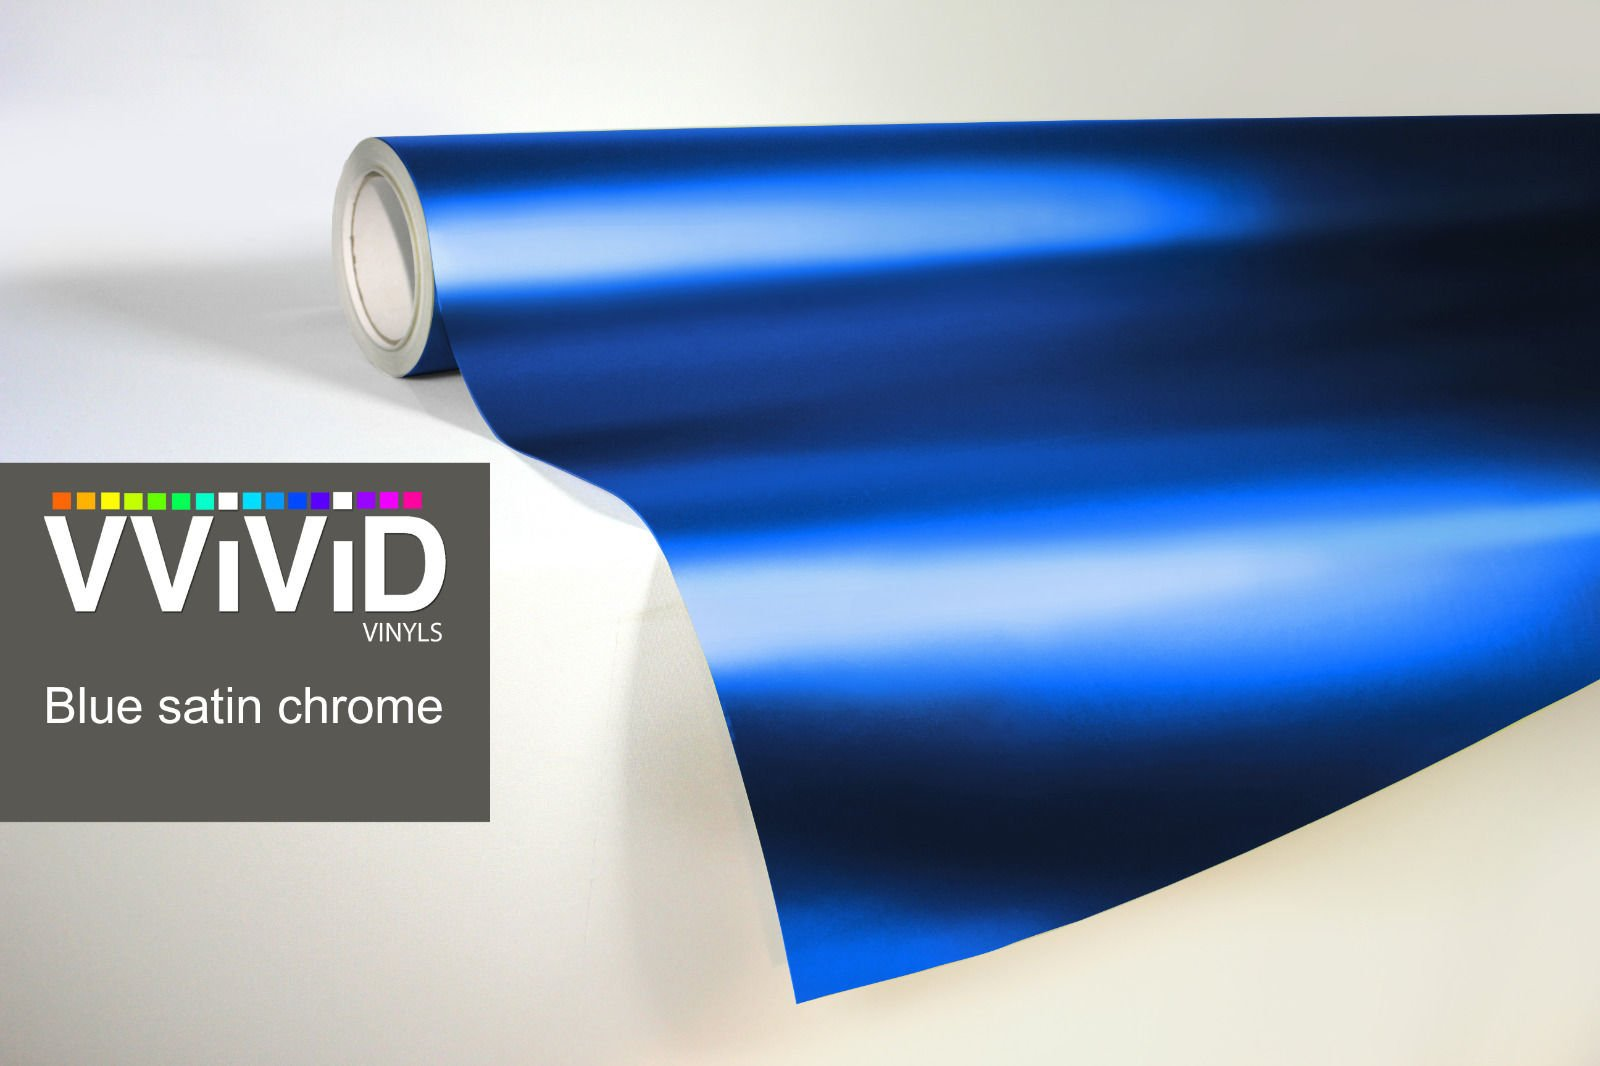 VViViD Gold Satin Chrome Vinyl Wrap Stretch Conform DIY Easy to Use Air-Release Adhesive 3ft x 5ft